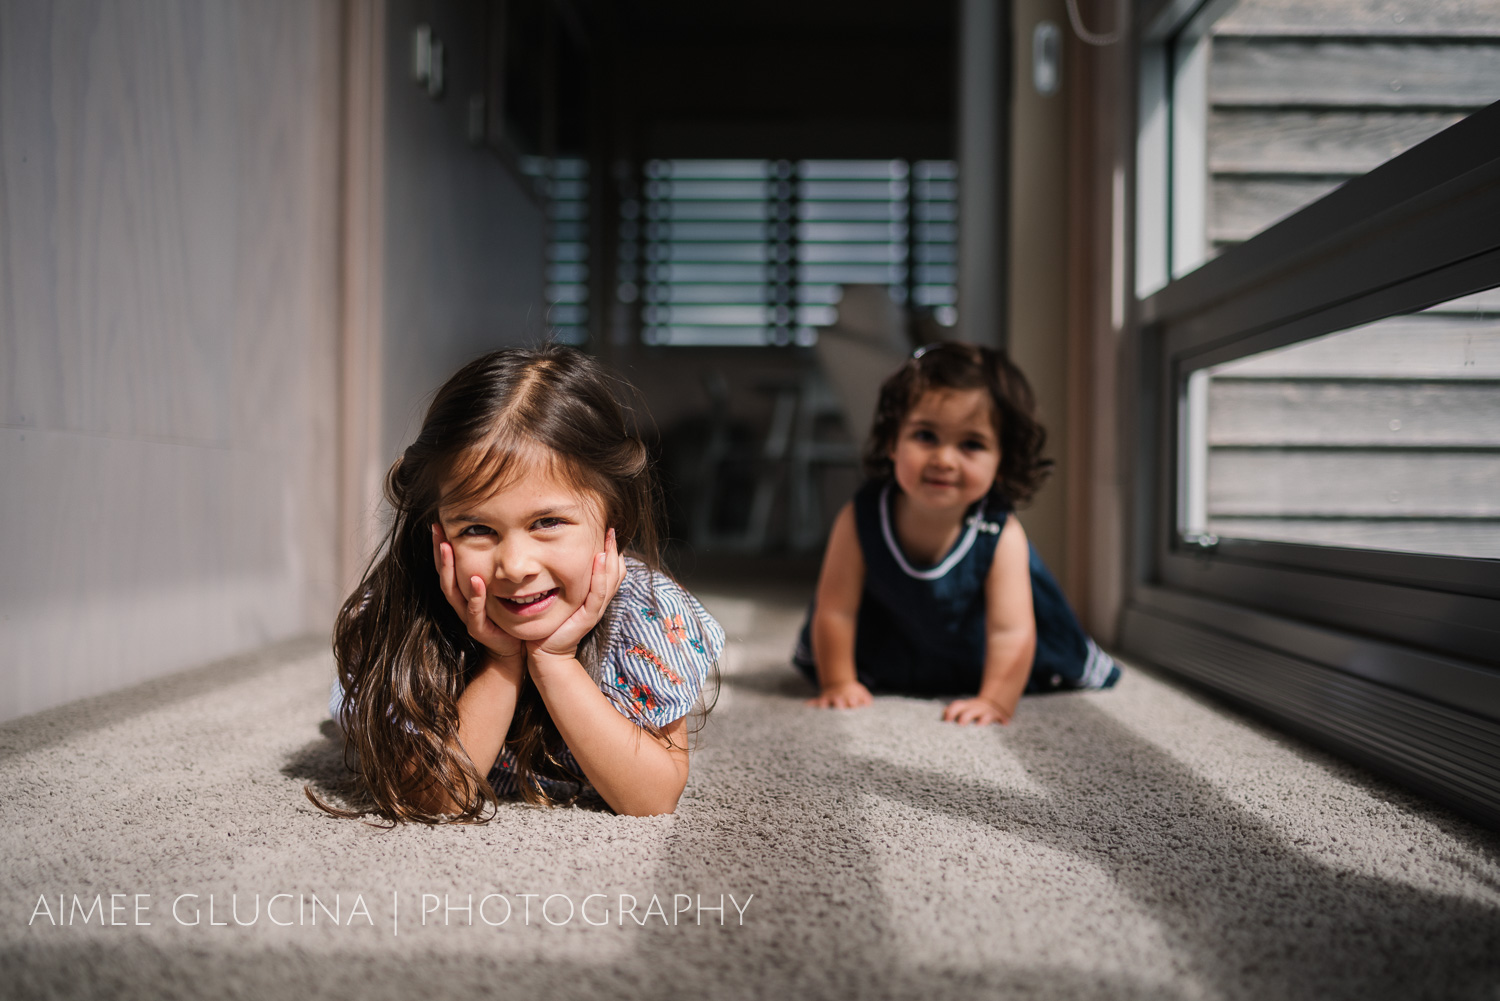 Brent Family Session by Aimee Glucina Photography.jpg